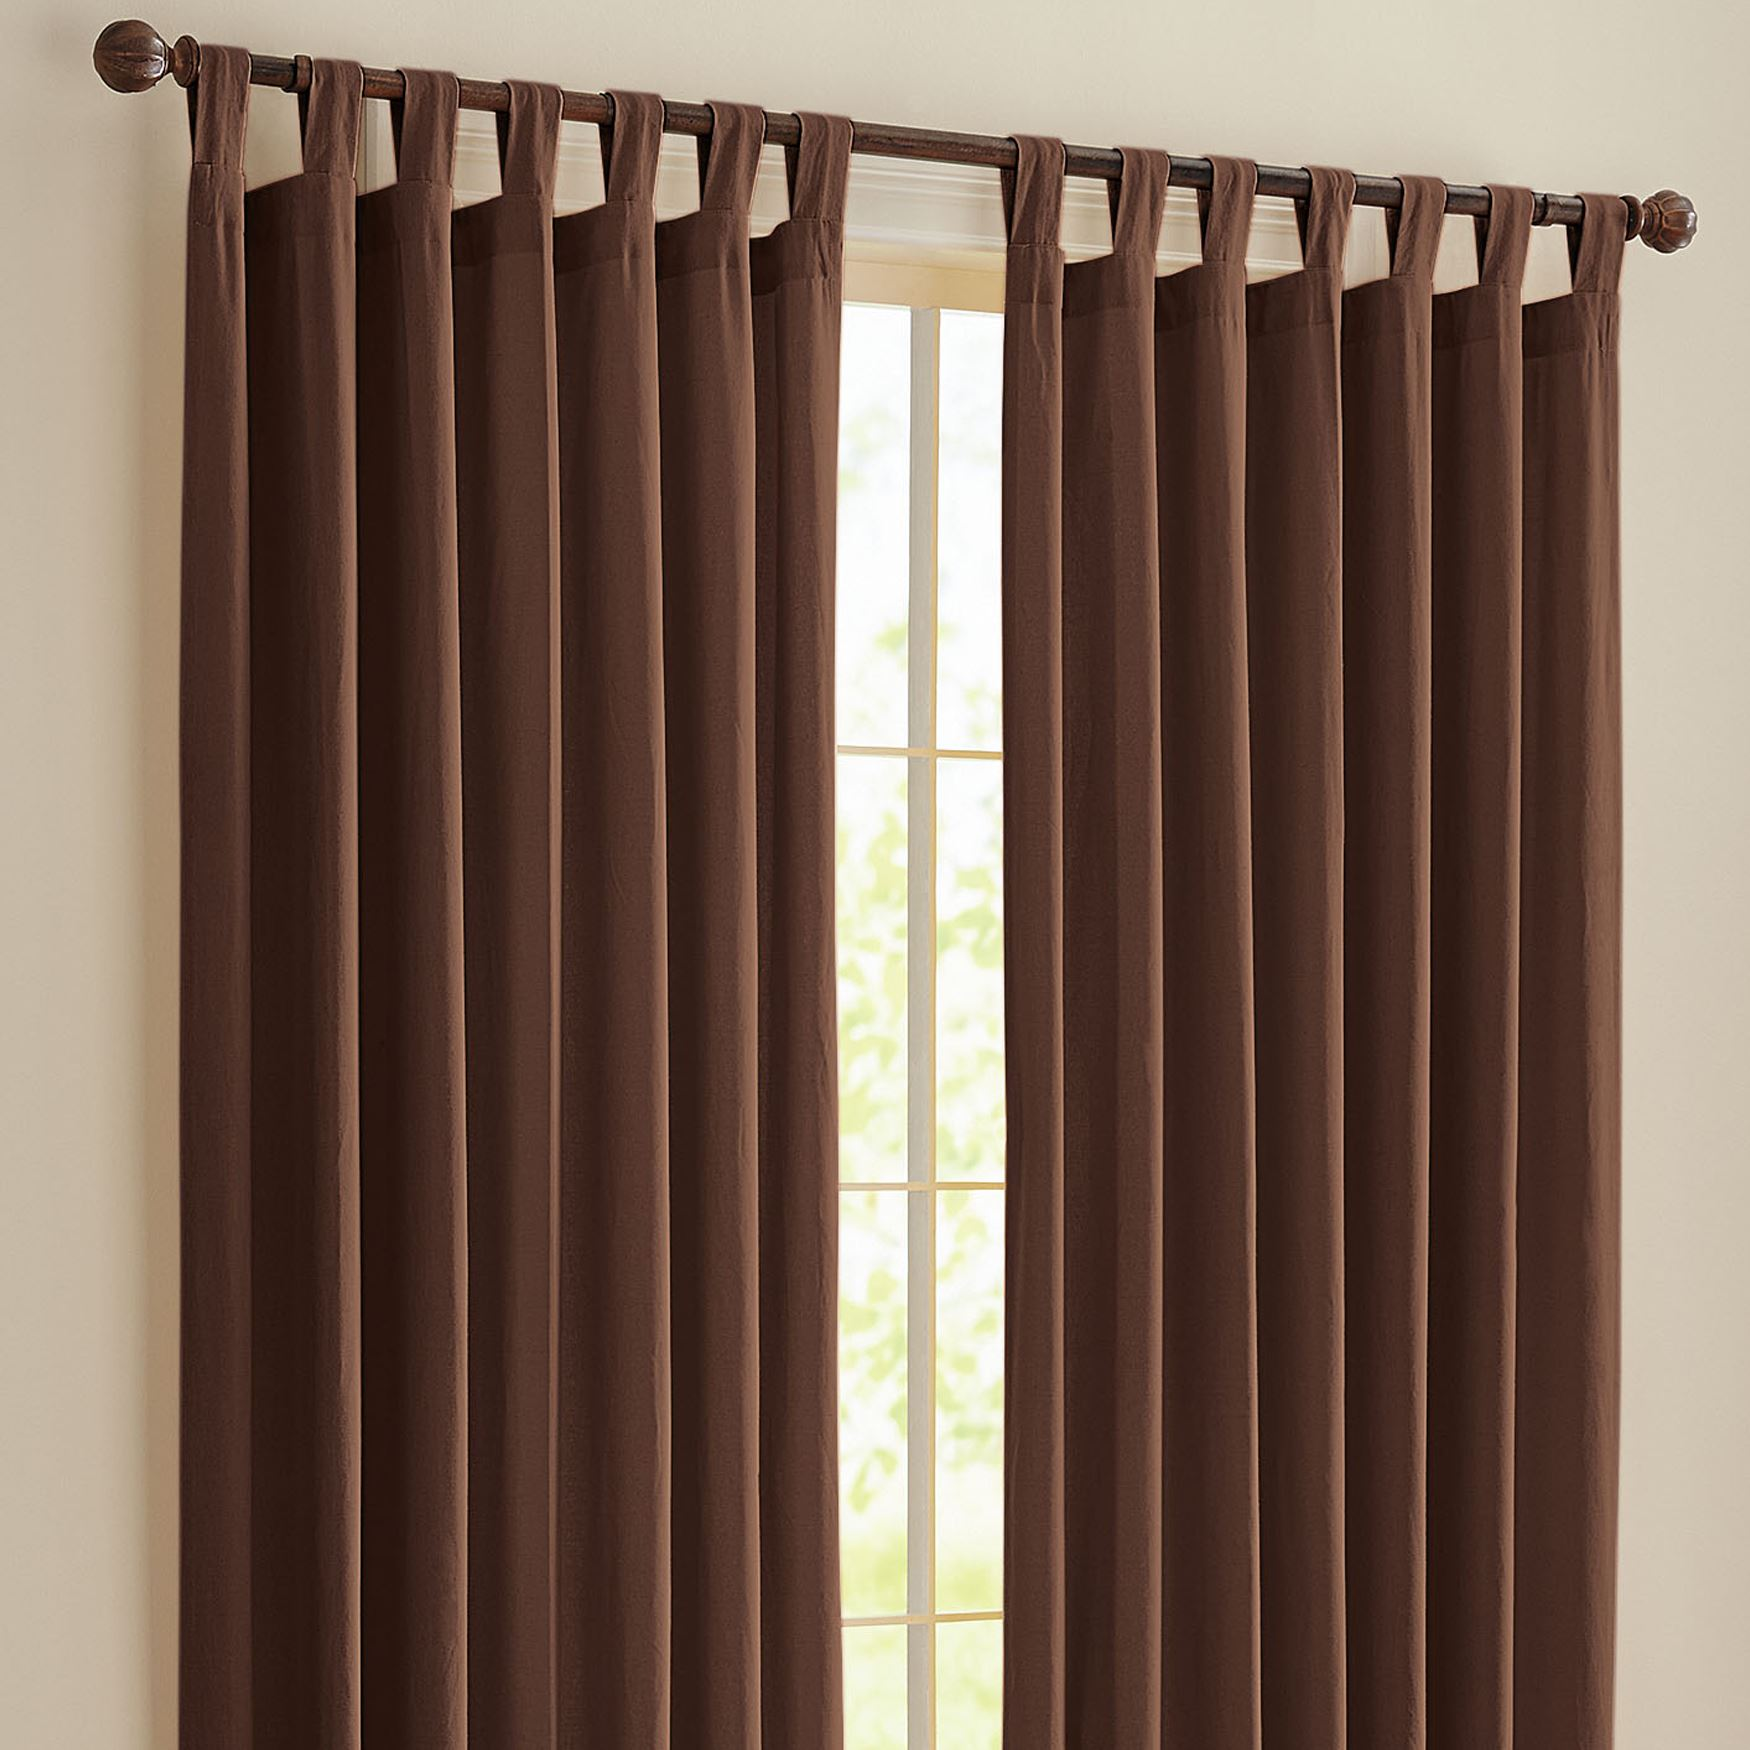 Tab Top Curtains The Best You Can Get